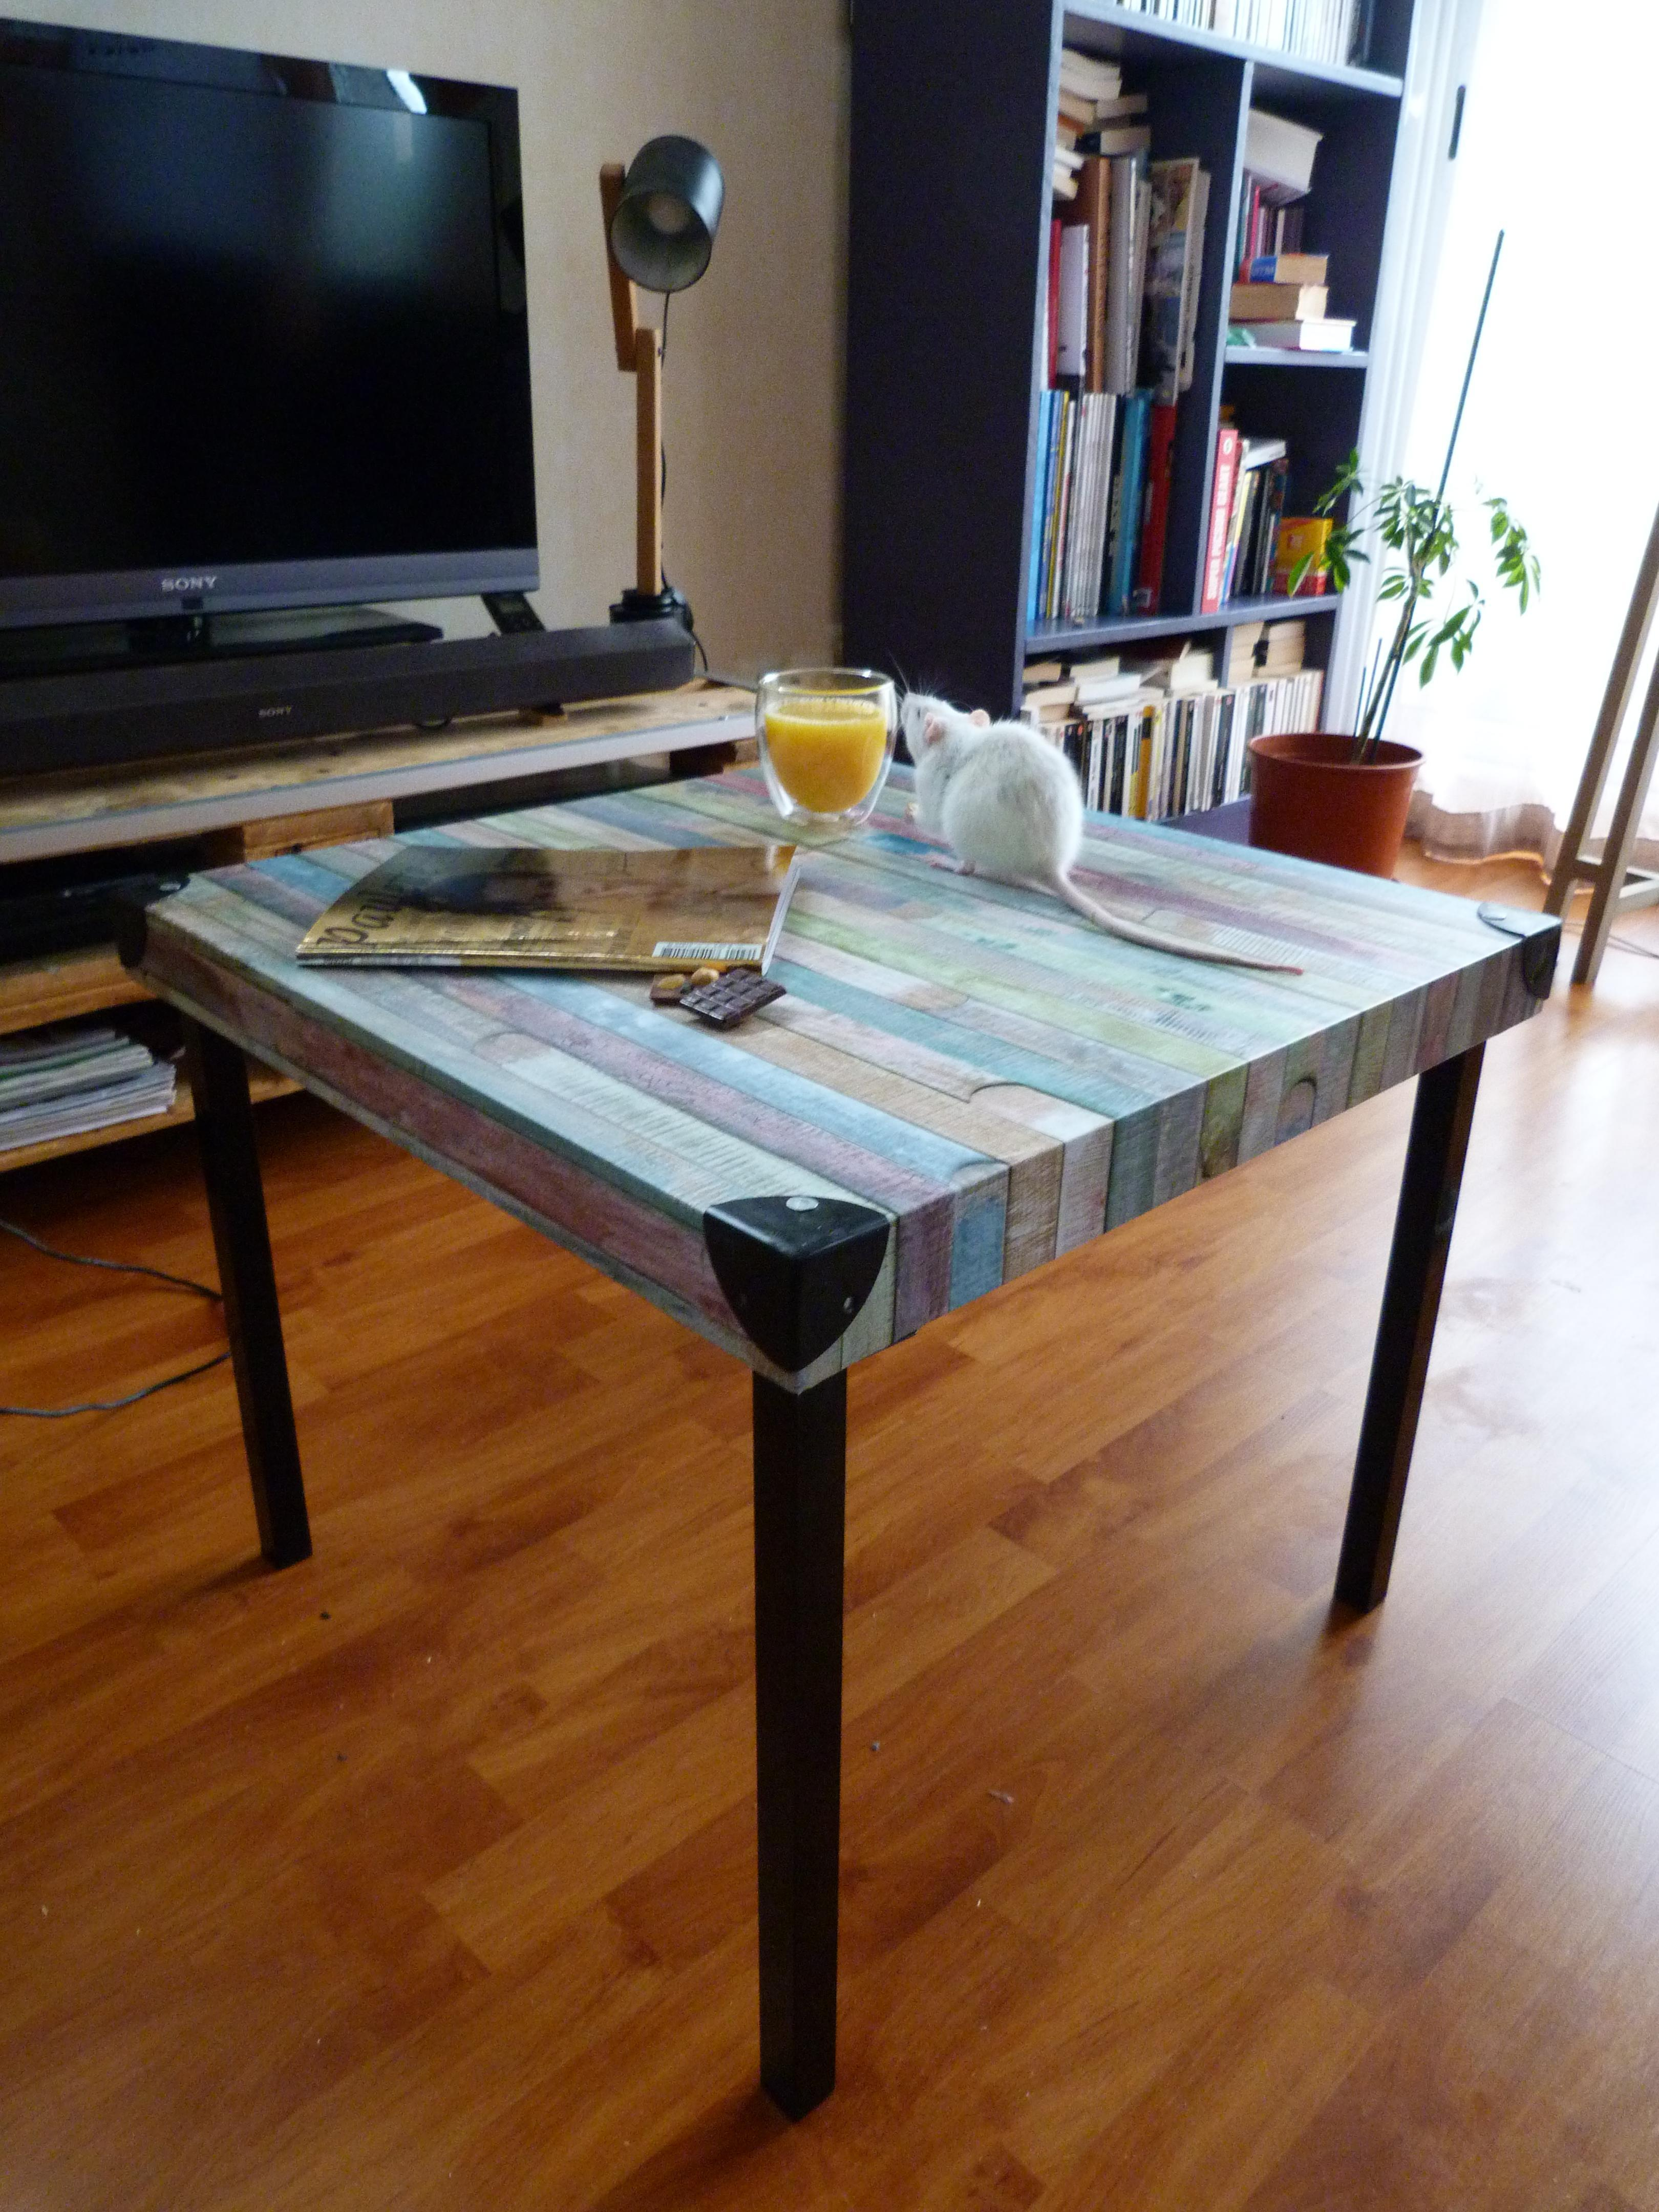 Customiser une table basse sammlung von - Customiser une table basse ...